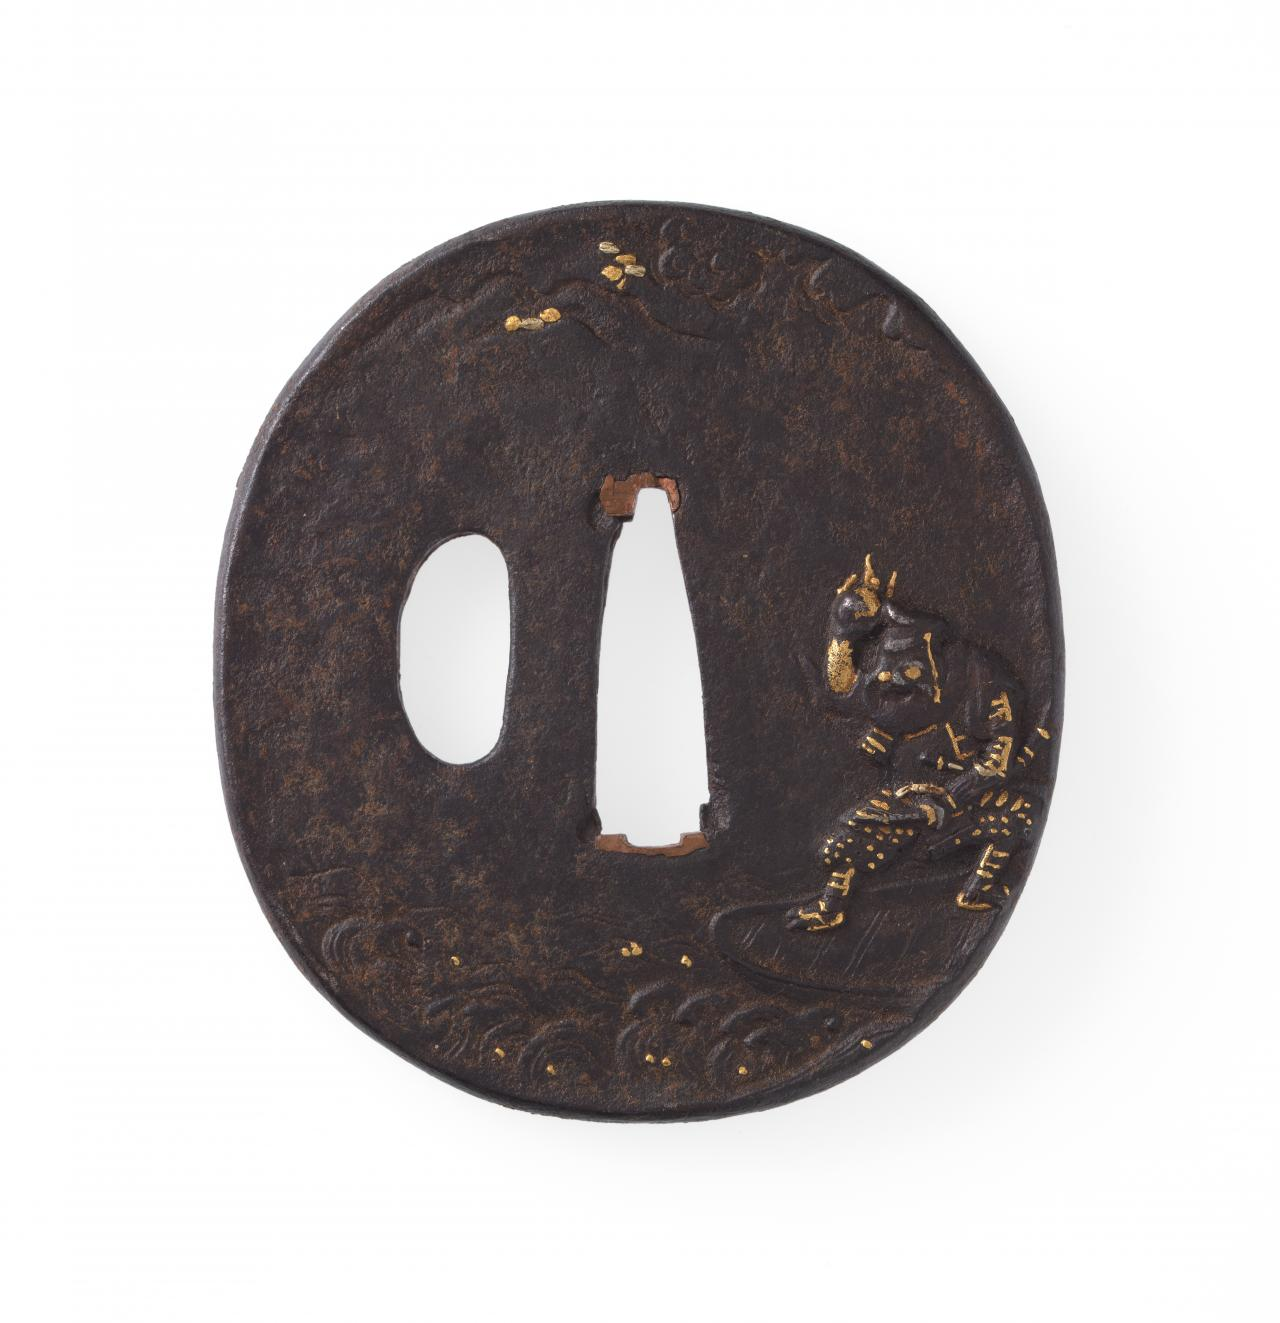 Sword guard with warrior on a boat design